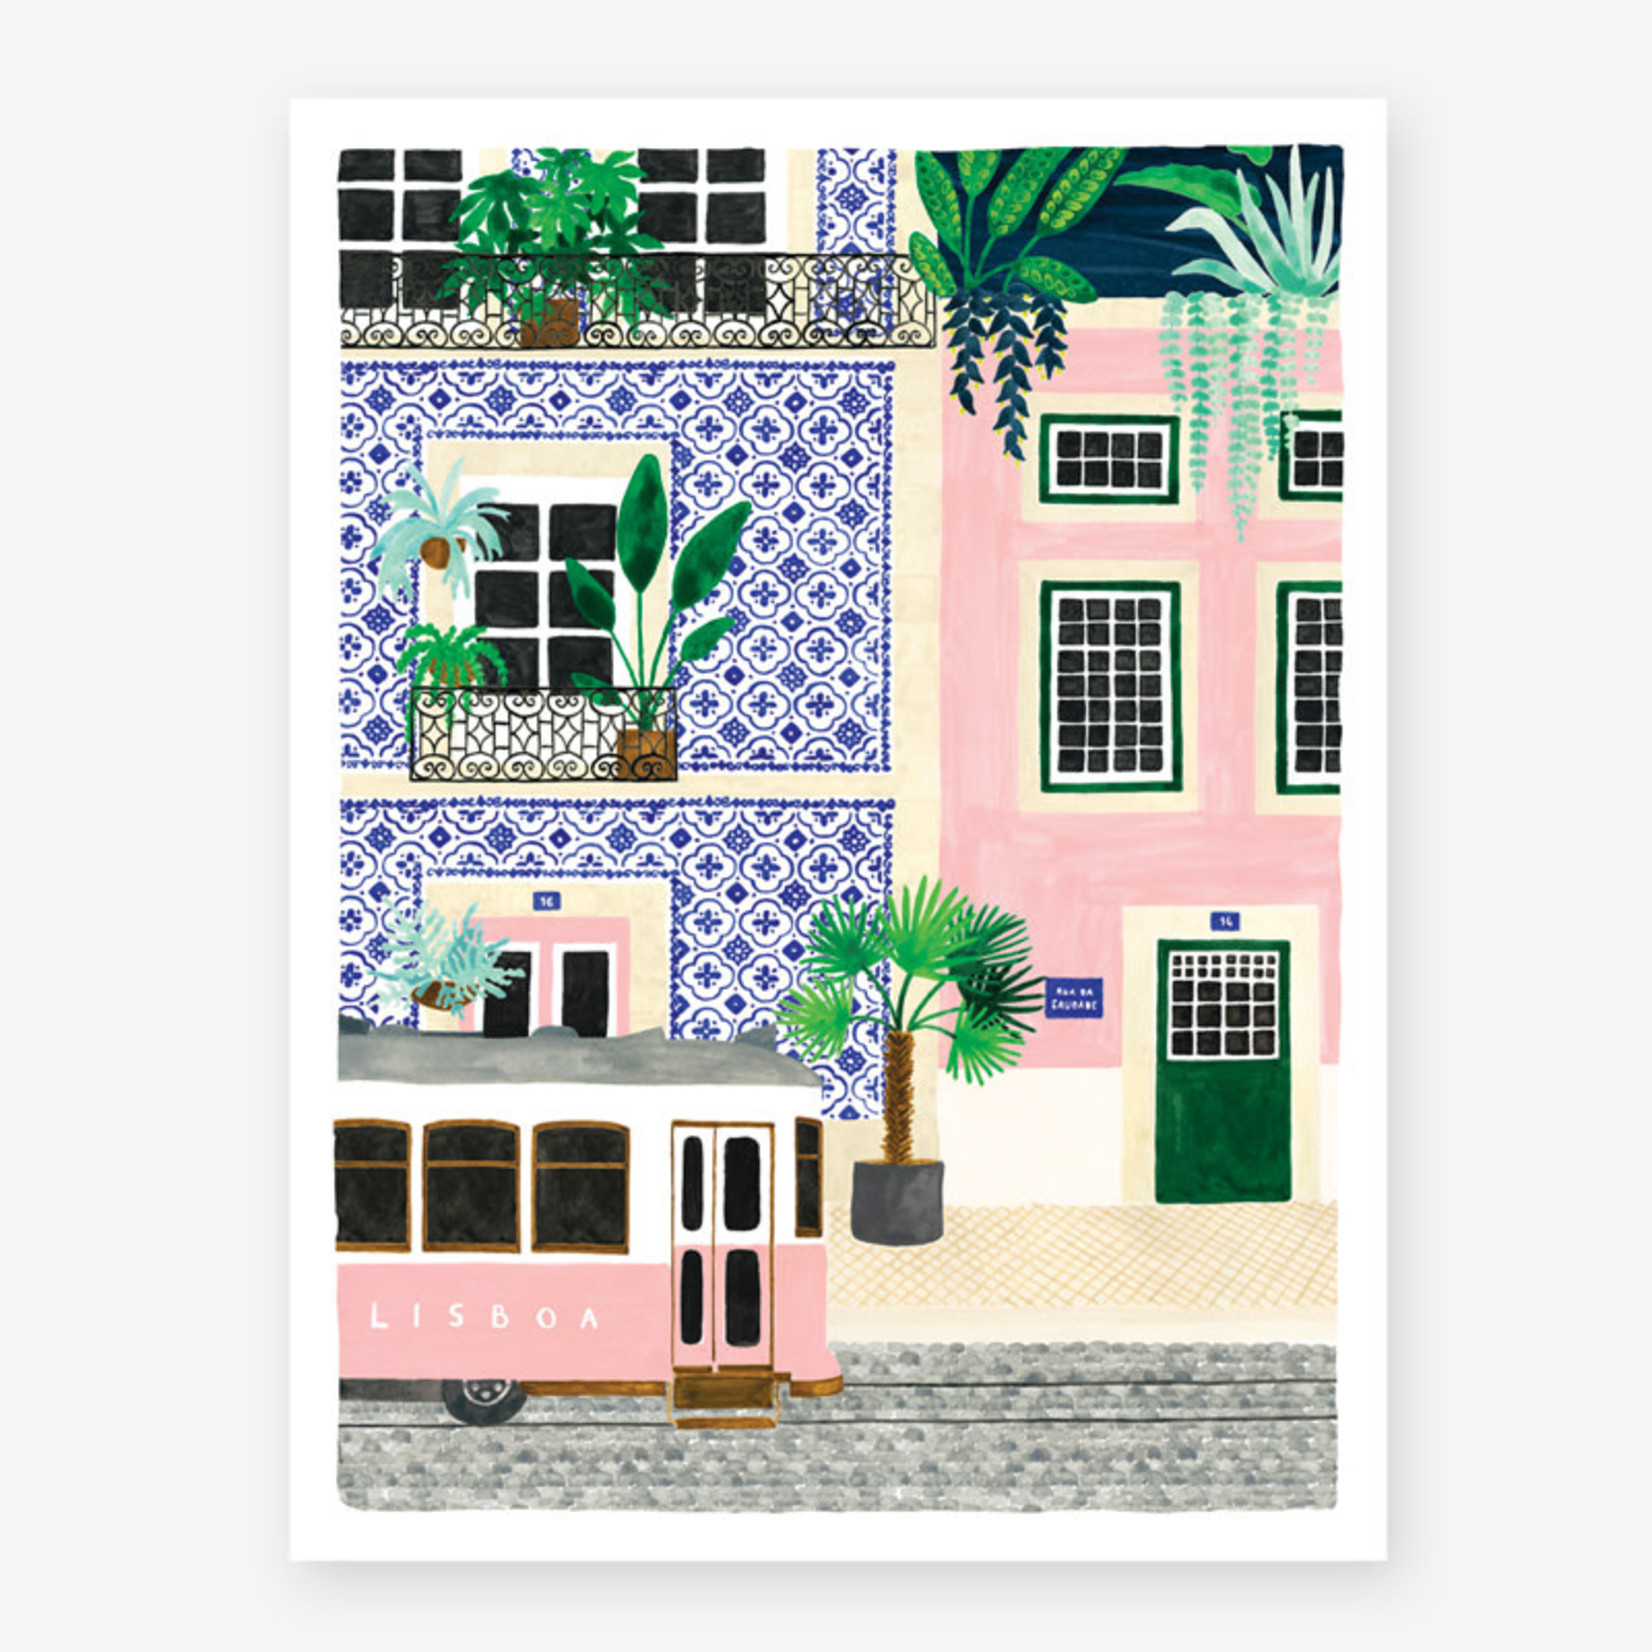 All the ways to say Poster: Lissabon 30x40cm